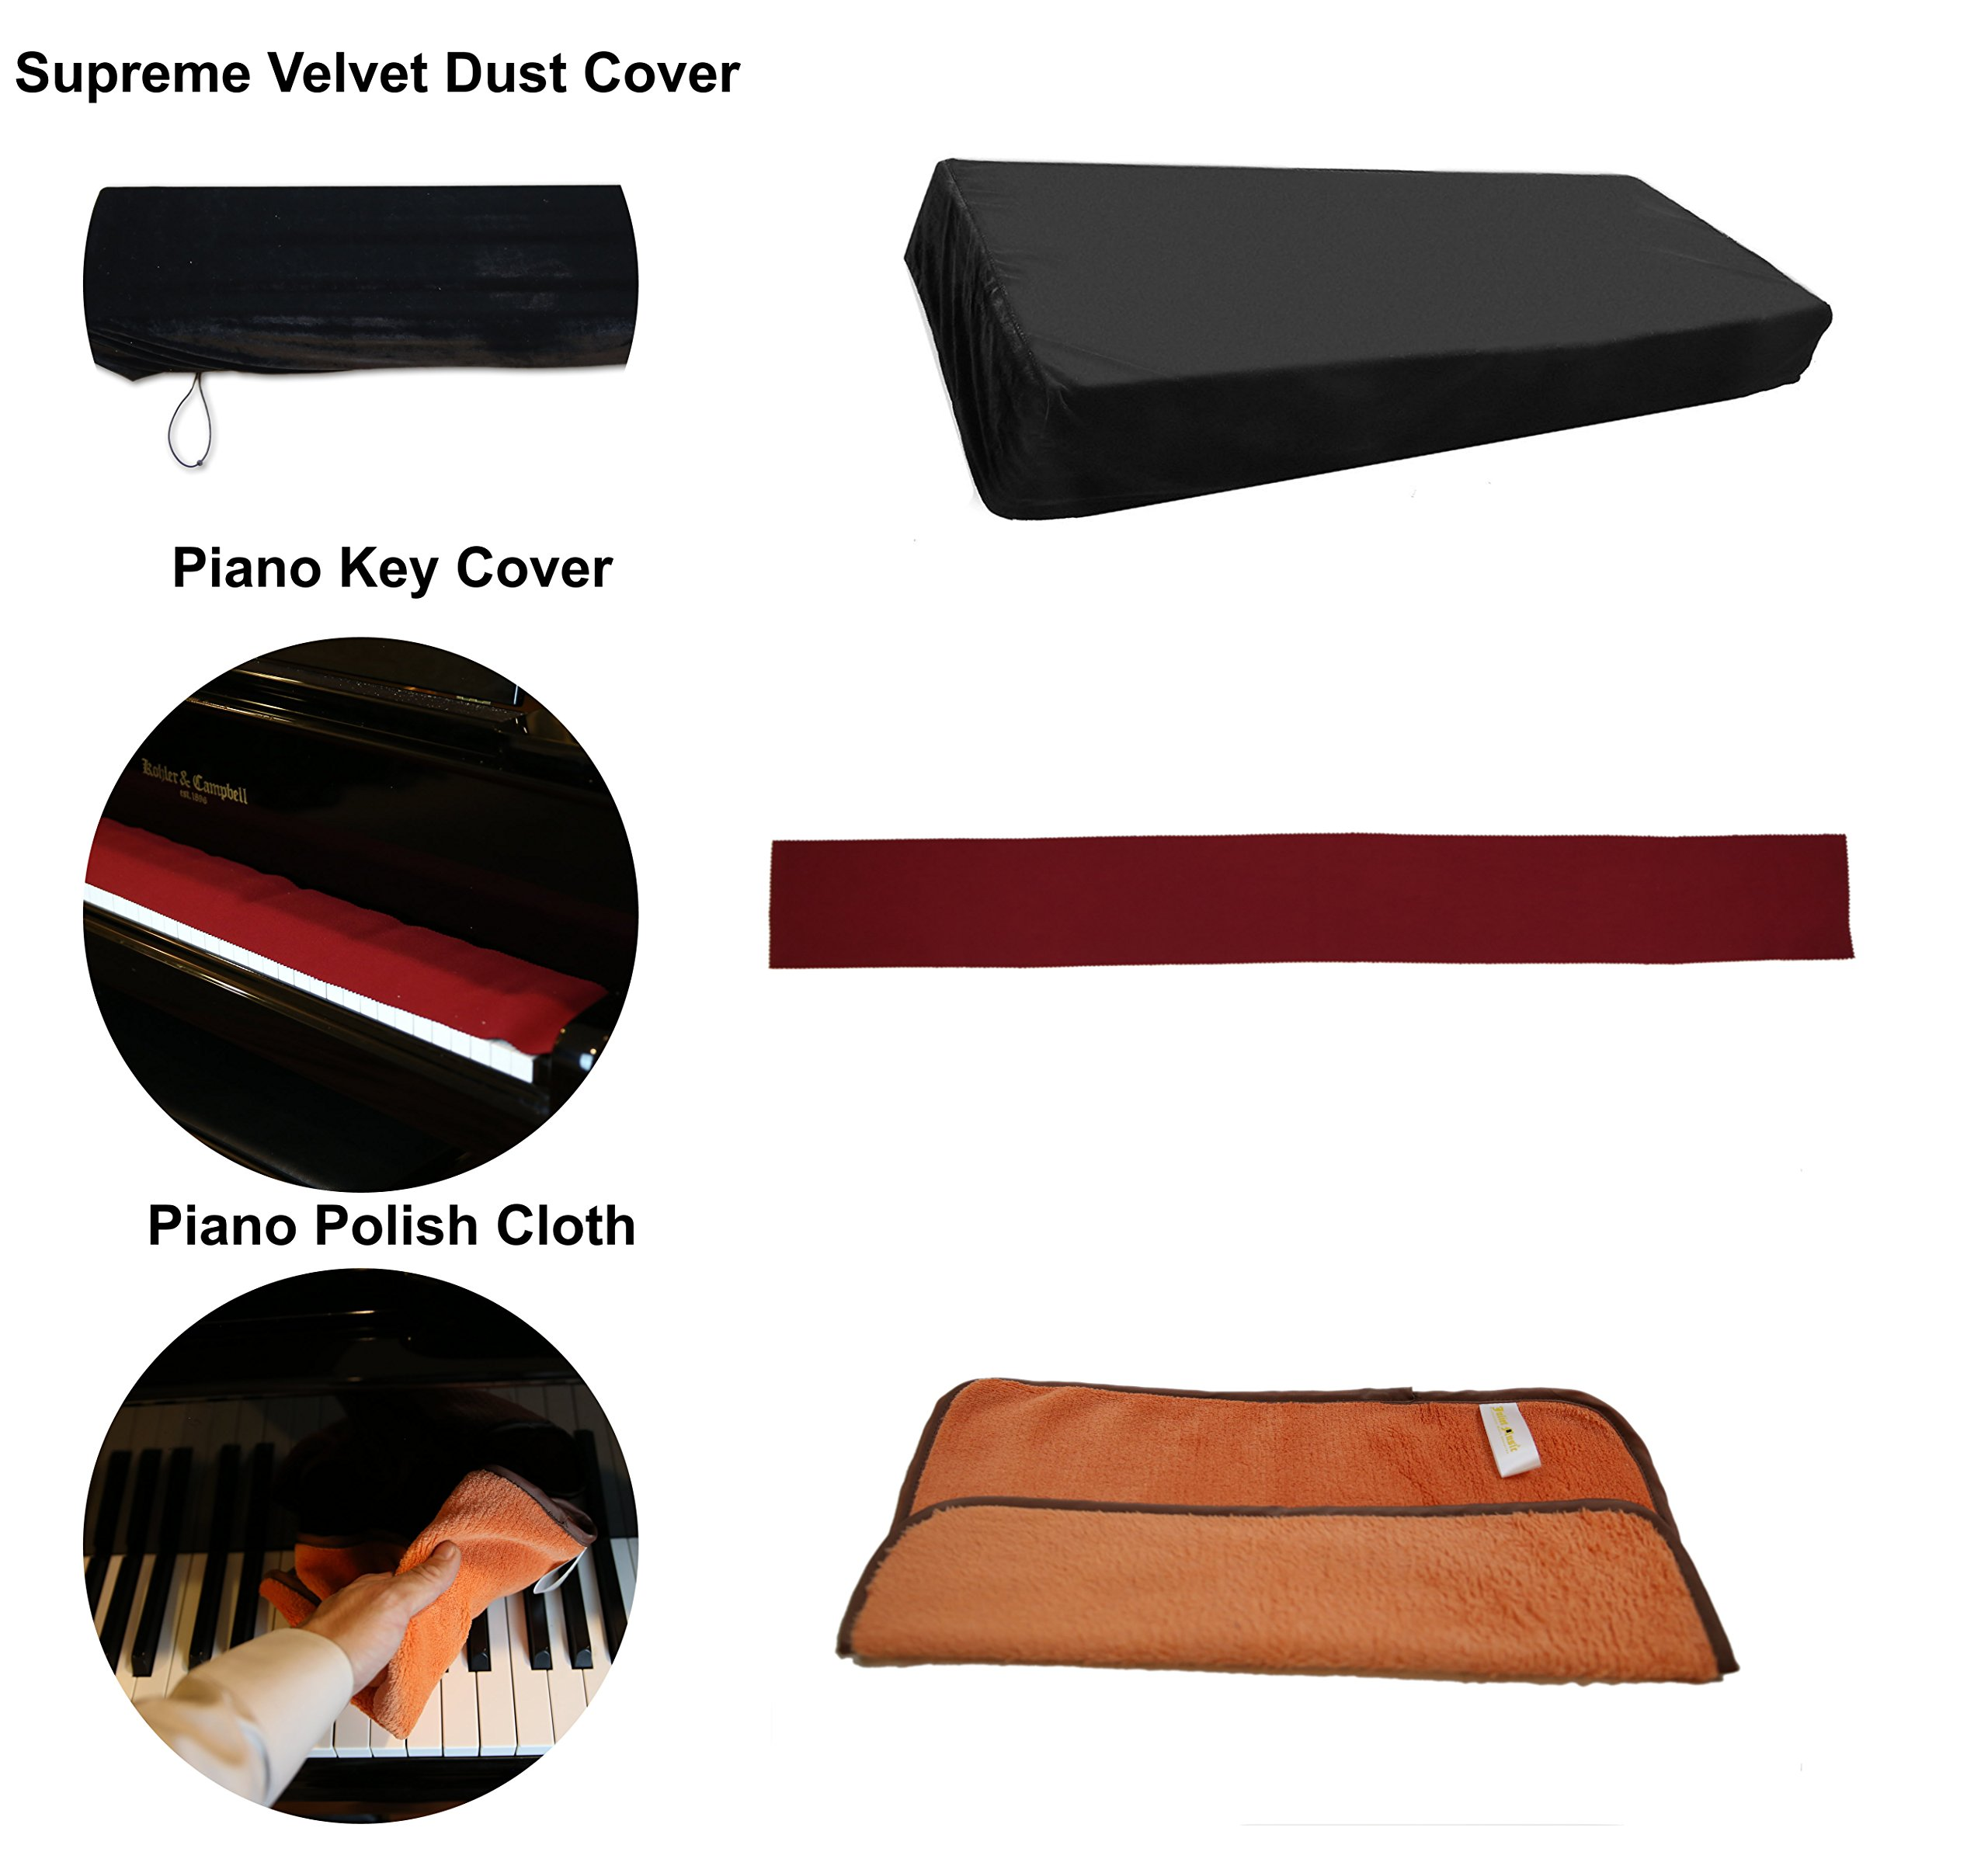 Yamaha P45B Black 88 Weighted Keys Digital Piano keyboard Bundle with Juliet Music Piano Dust Cover, Key Cover, Polish Cloth and Manuscript Book by Yamaha (Image #5)